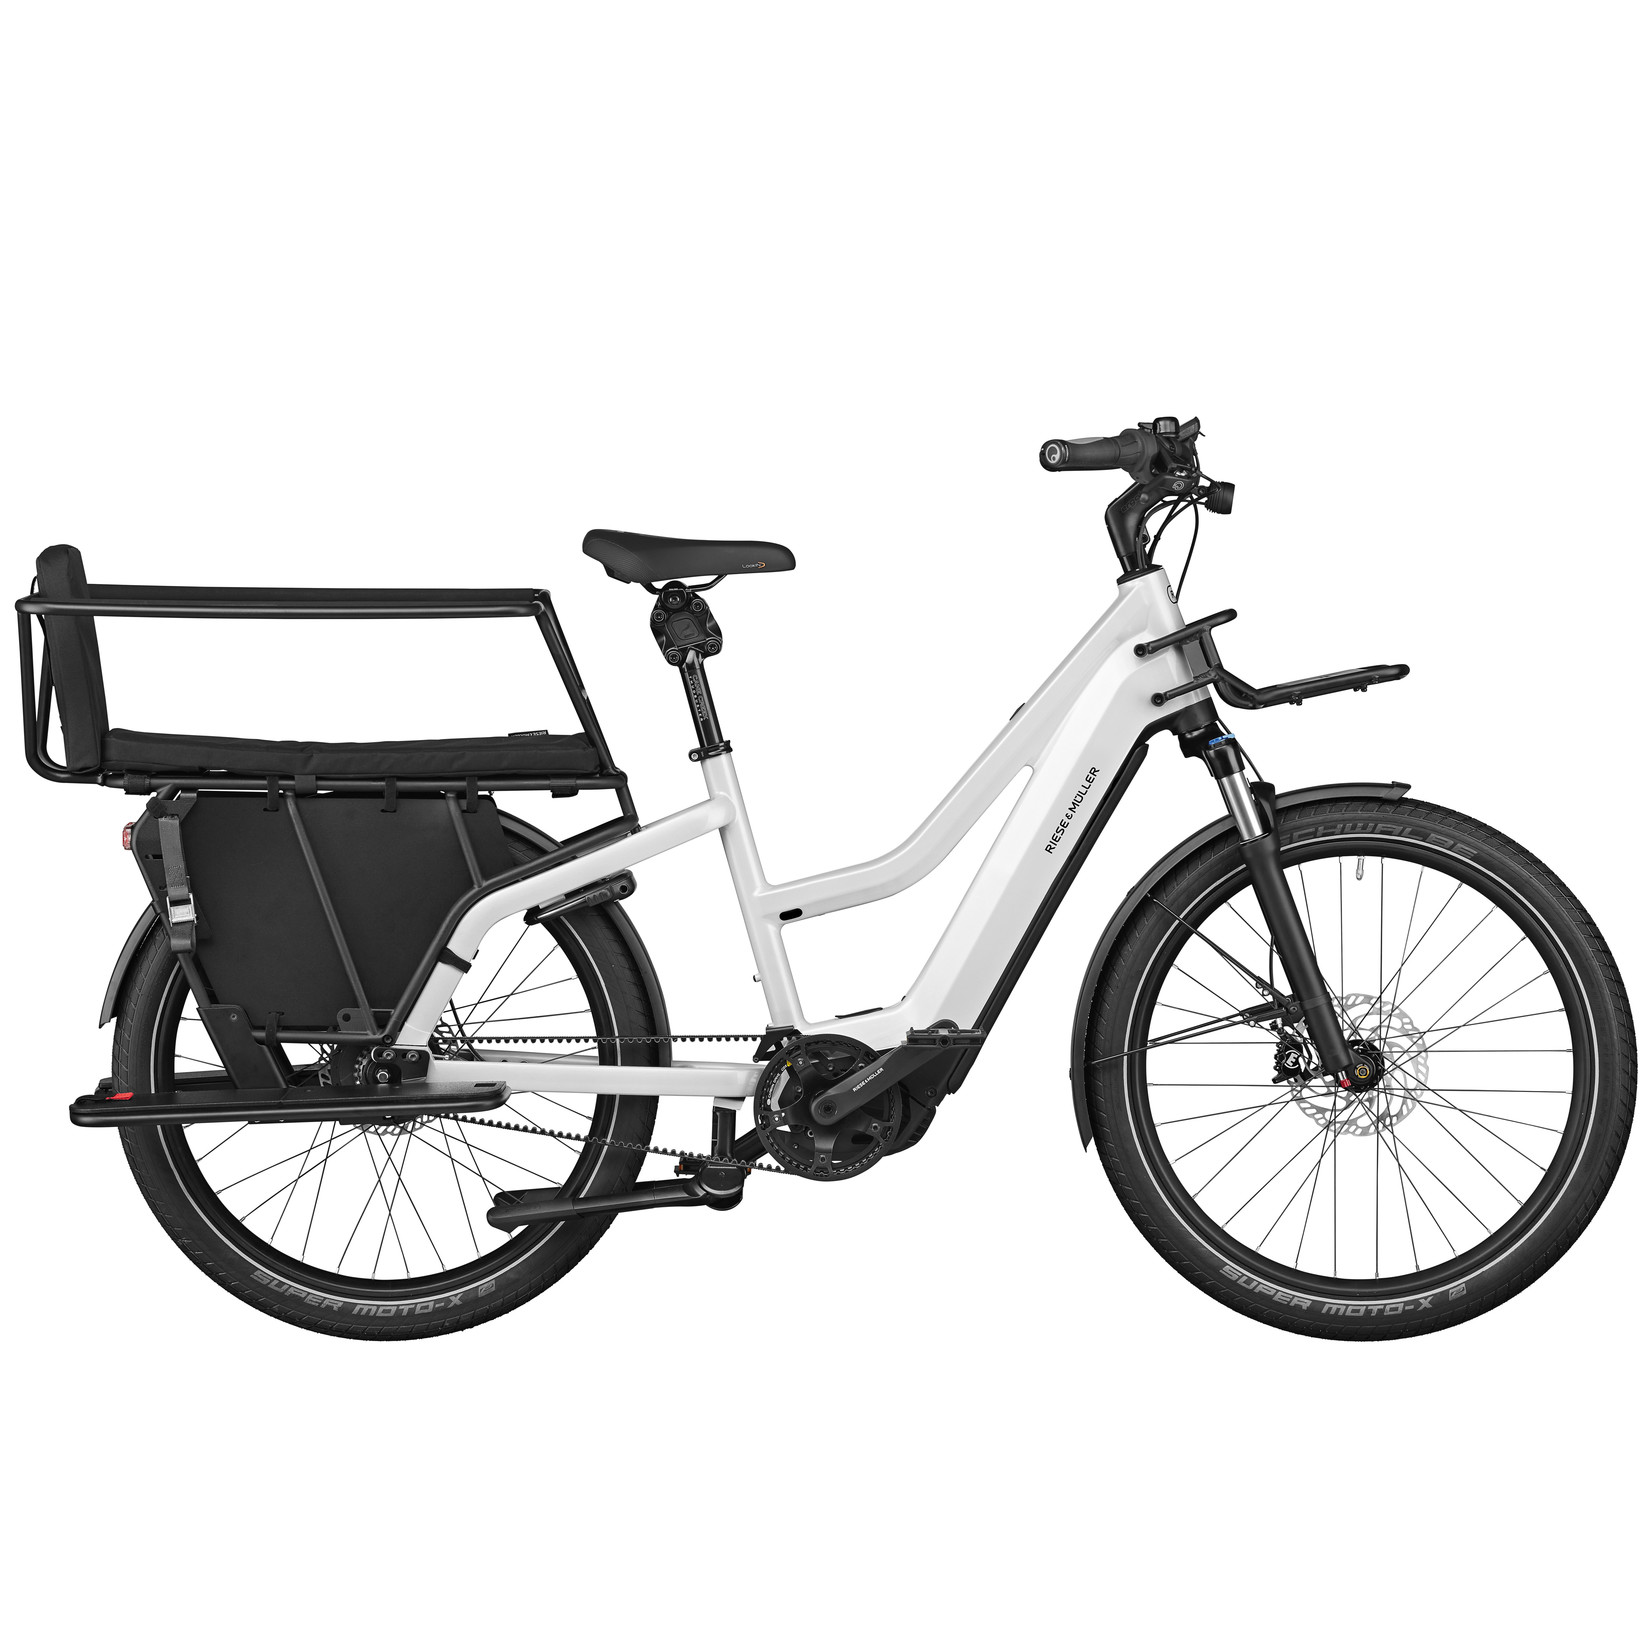 Riese & Muller Riese & Muller, Multicharger Mixte GT light, Pearl White, With Safety Bars, Passenger Kit and Cargo Bags